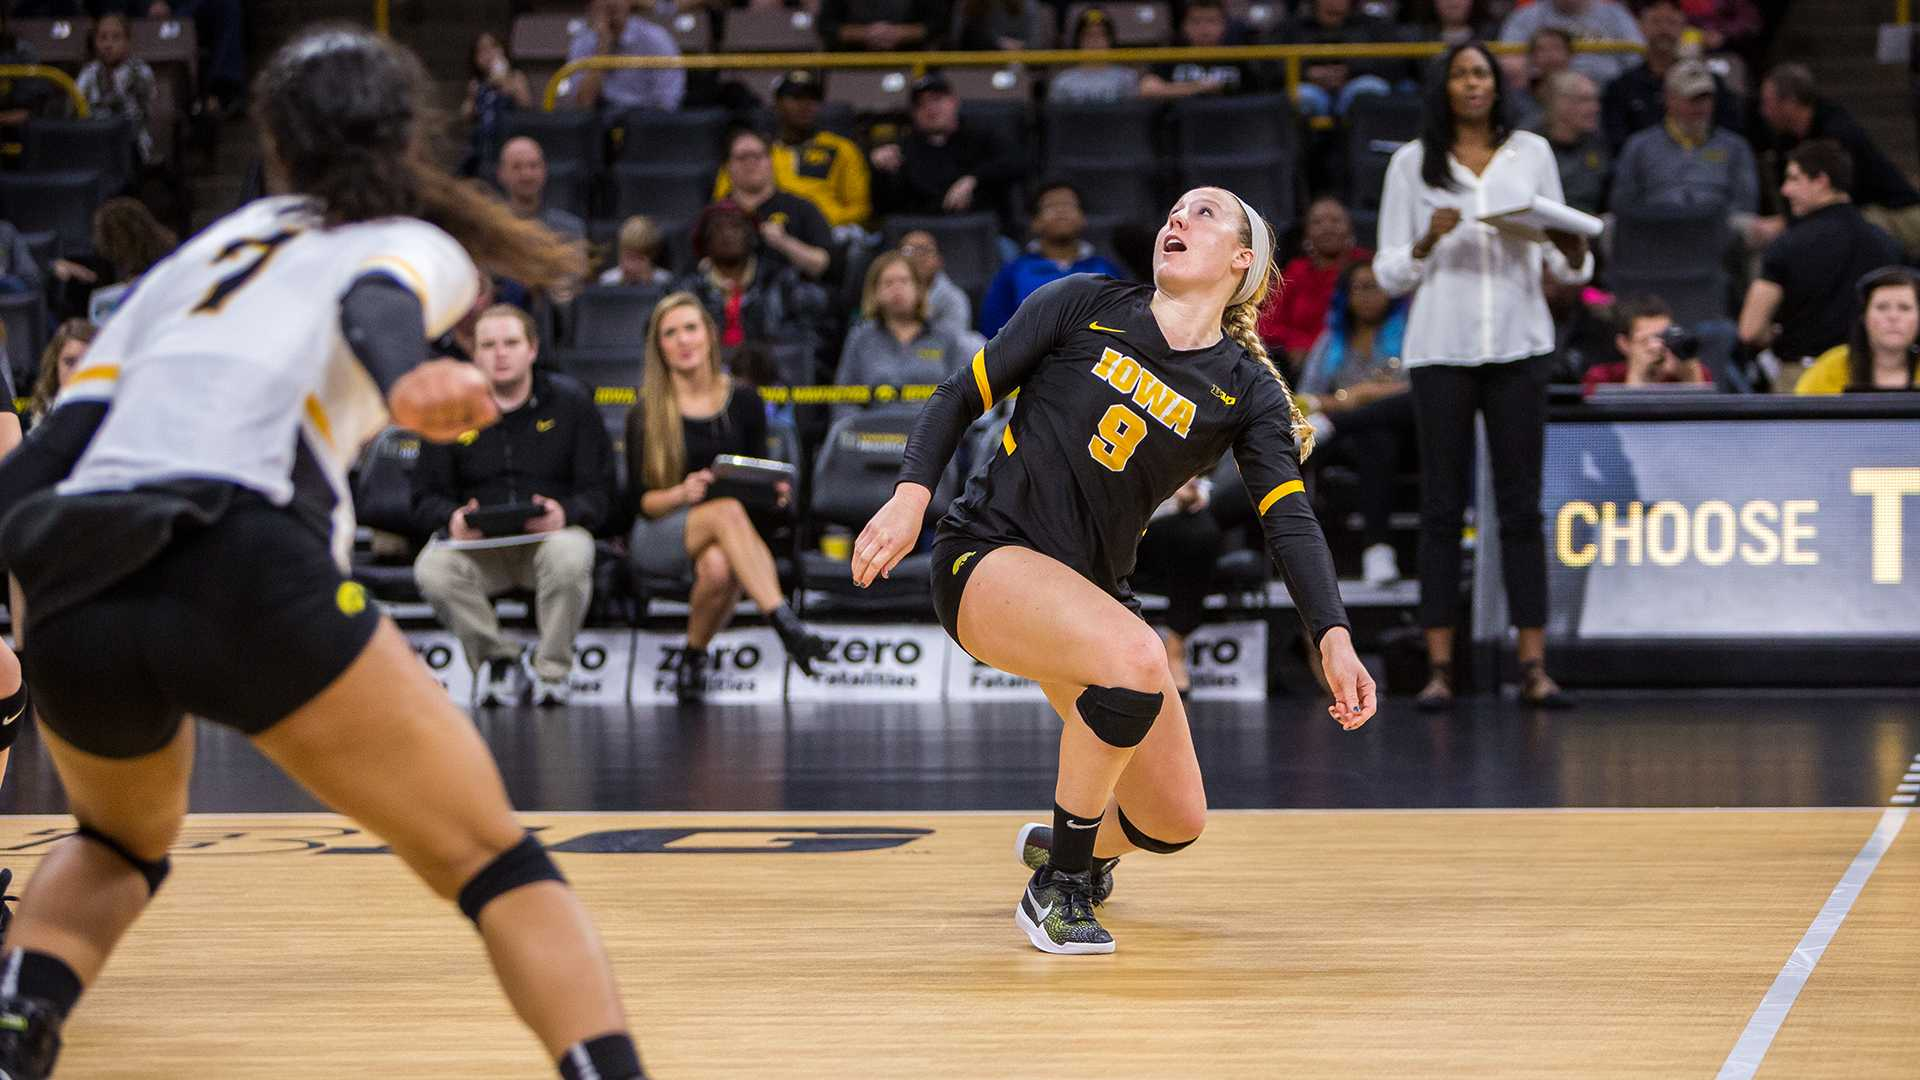 Annika Olsen reacts to a mis-hit ball during a volleyball match against Indiana University on Friday, Nov. 3, 2017. The Hawkeyes defeated the Hoosiers 3-0. (David Harmantas/The Daily Iowan)